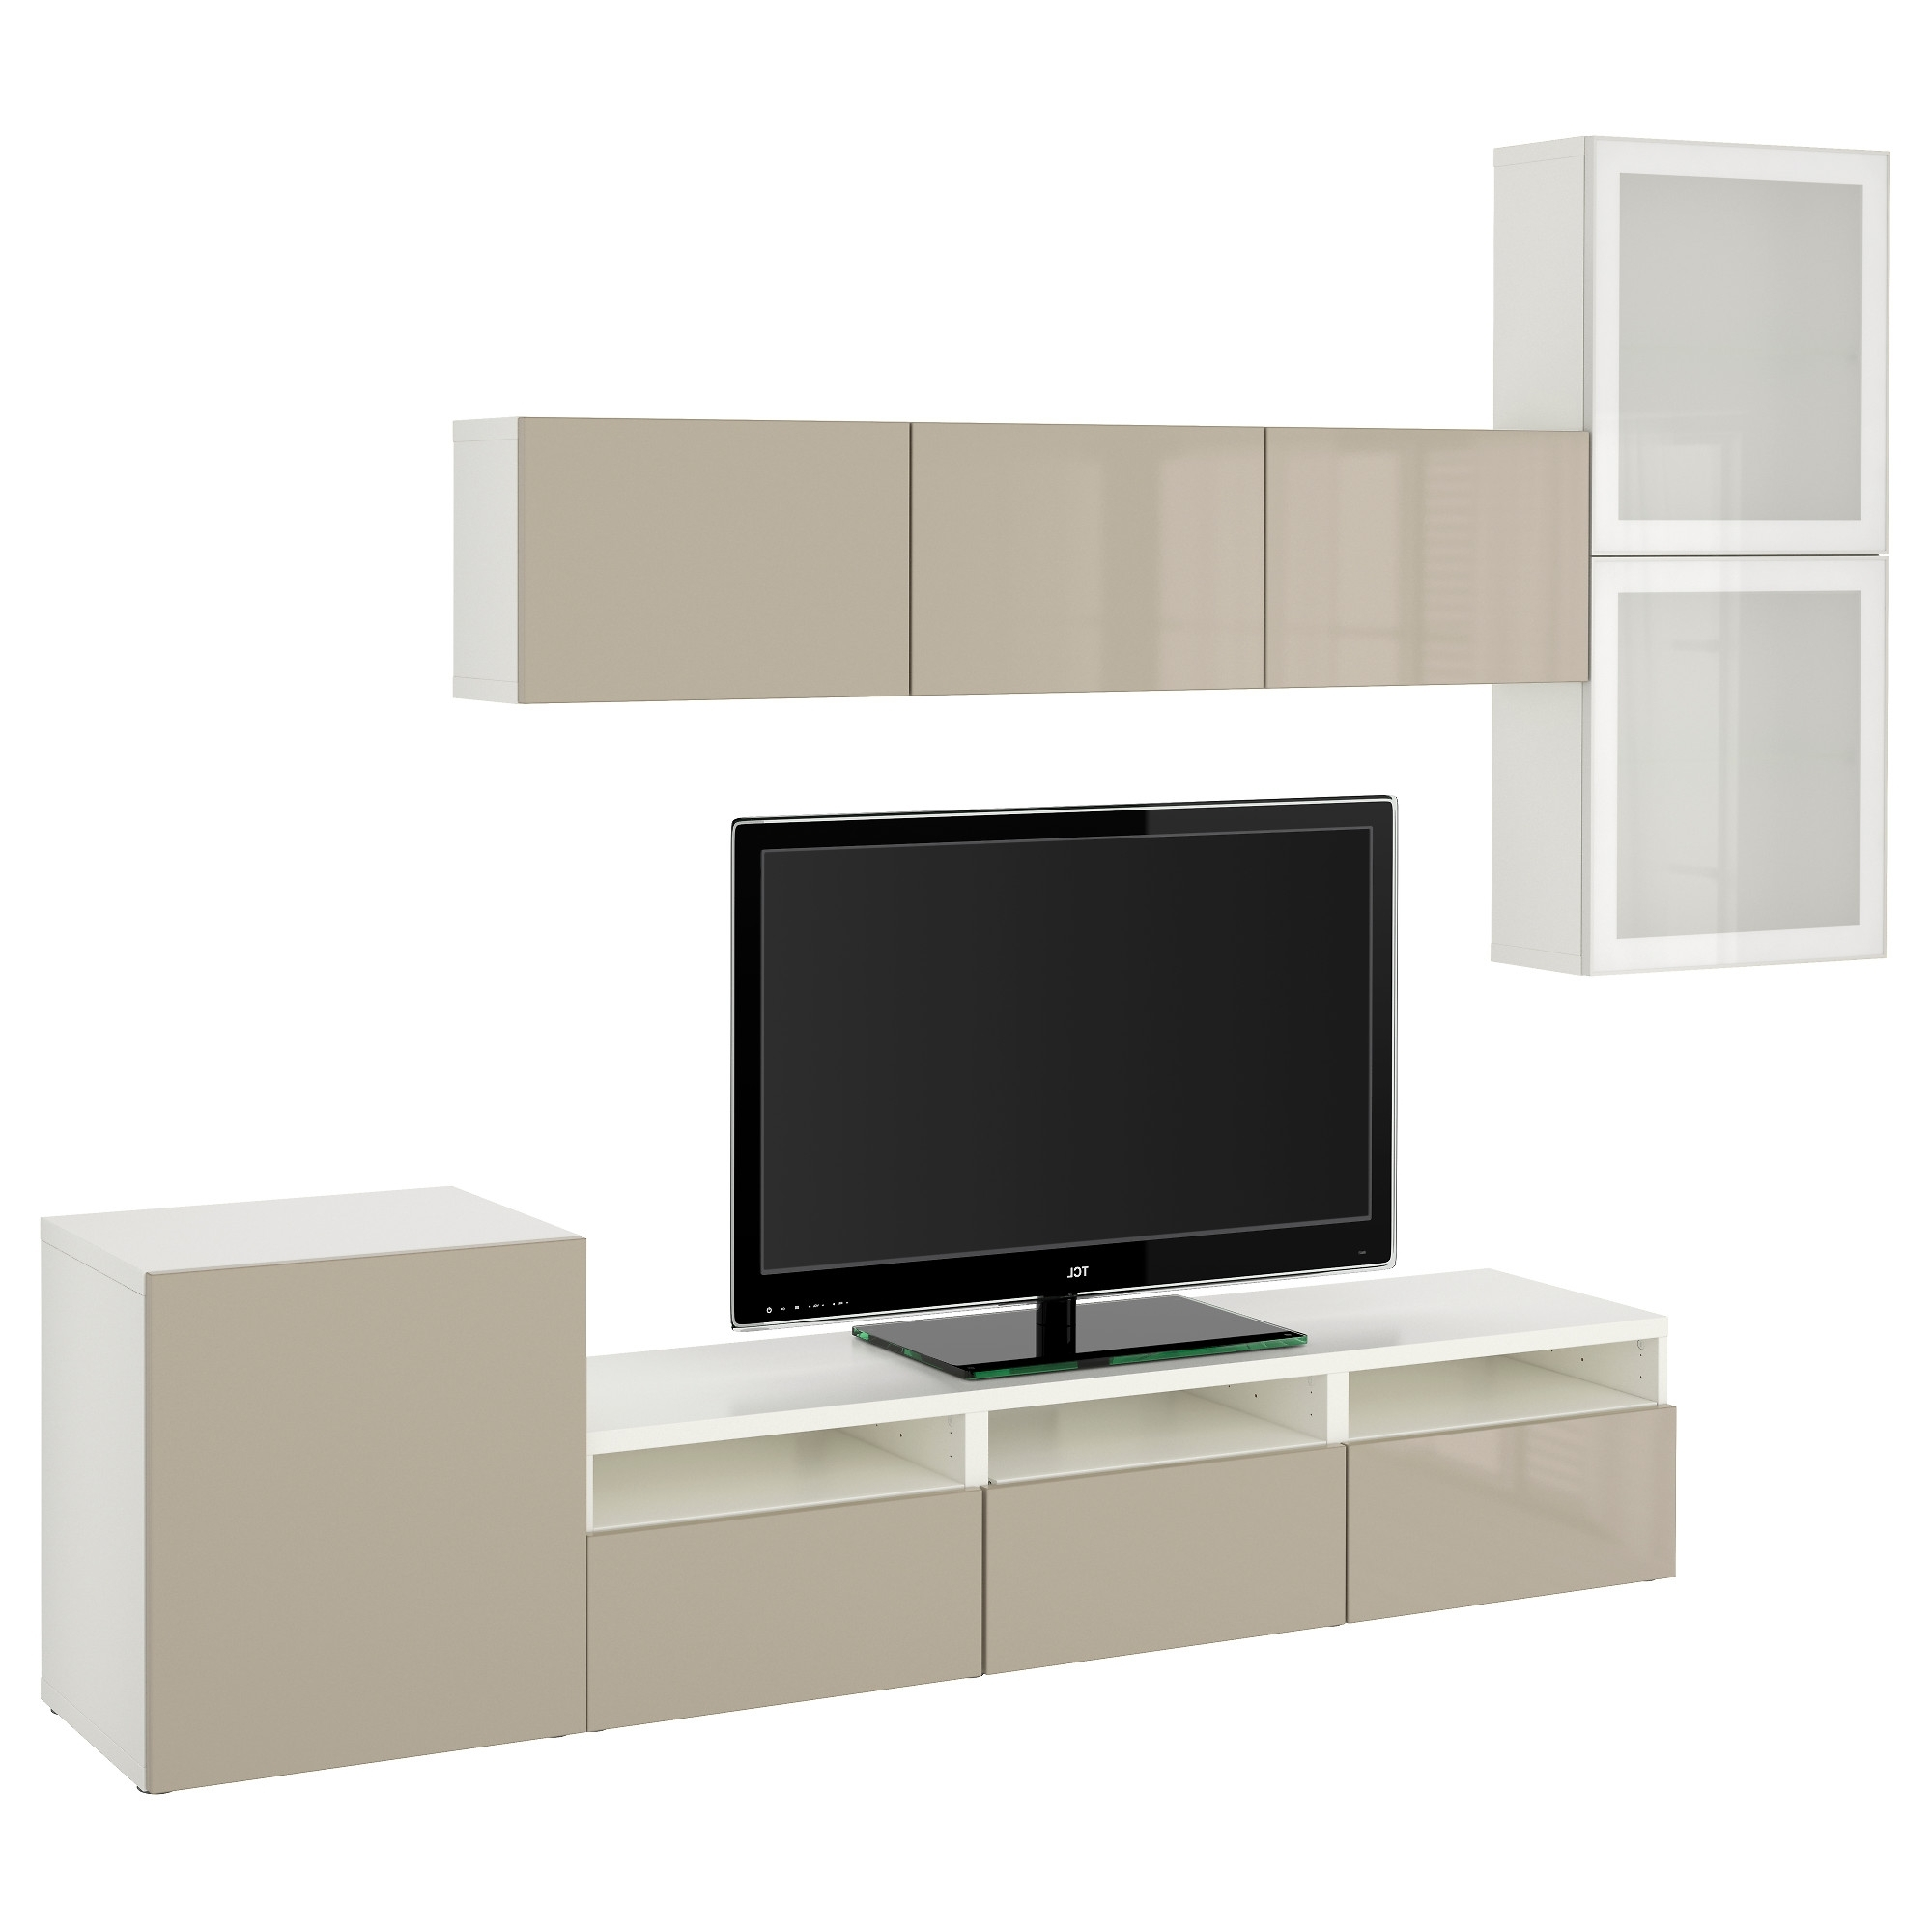 by bookshelf of stand reisa tv bookcase with decor bookcases diy image support home